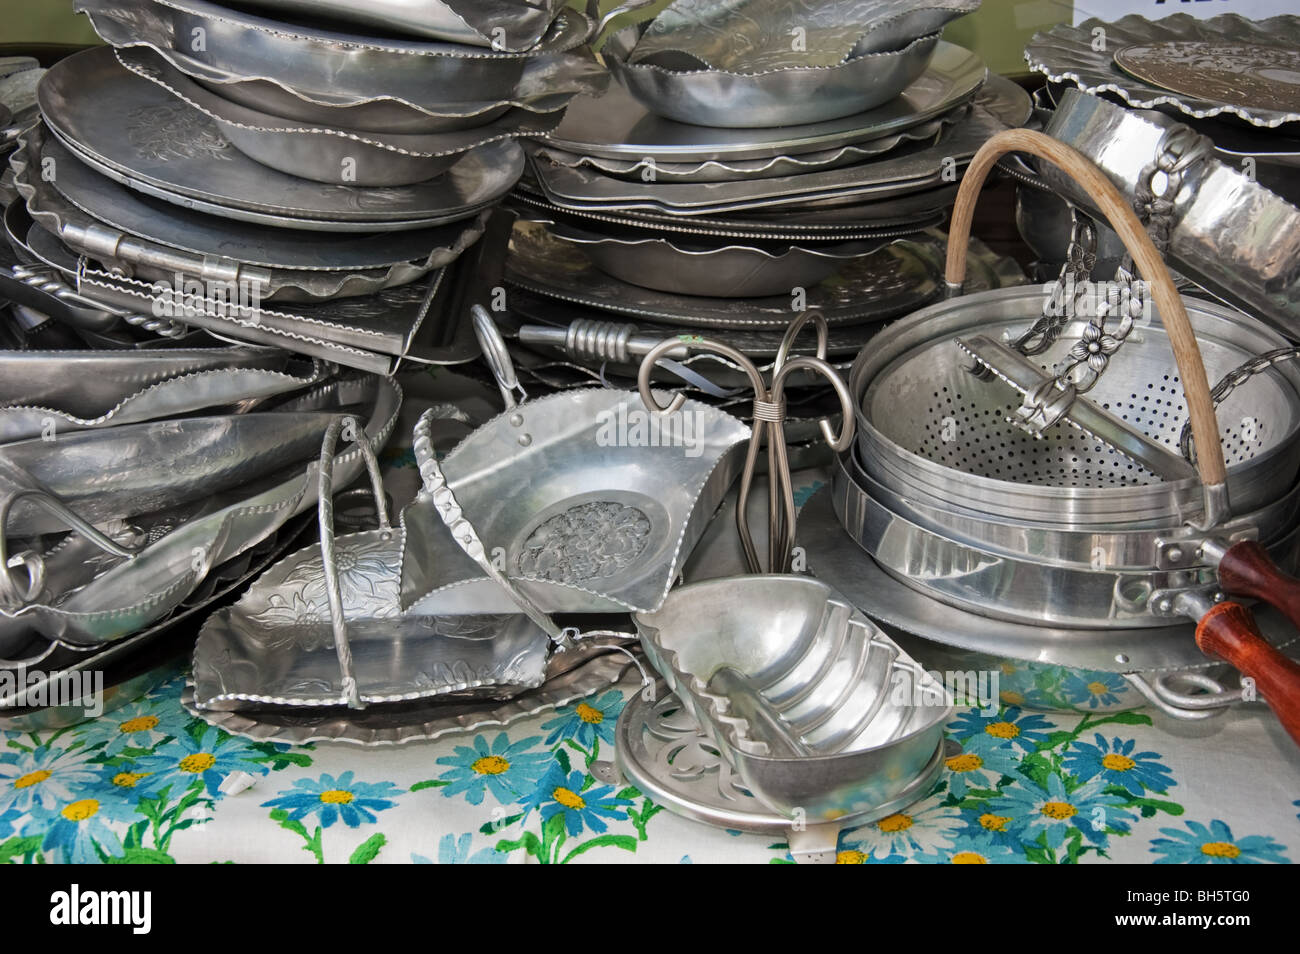 This photo shows stacks of tarnished, antique silver platters and other kitchenware. - Stock Image